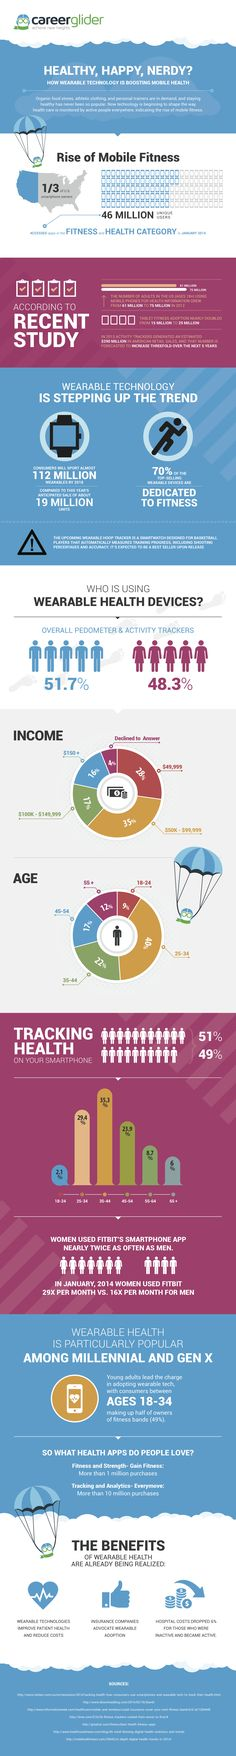 Infographic: How Wearable Technology Is Transforming Mobile Health #Infographic #healthcare